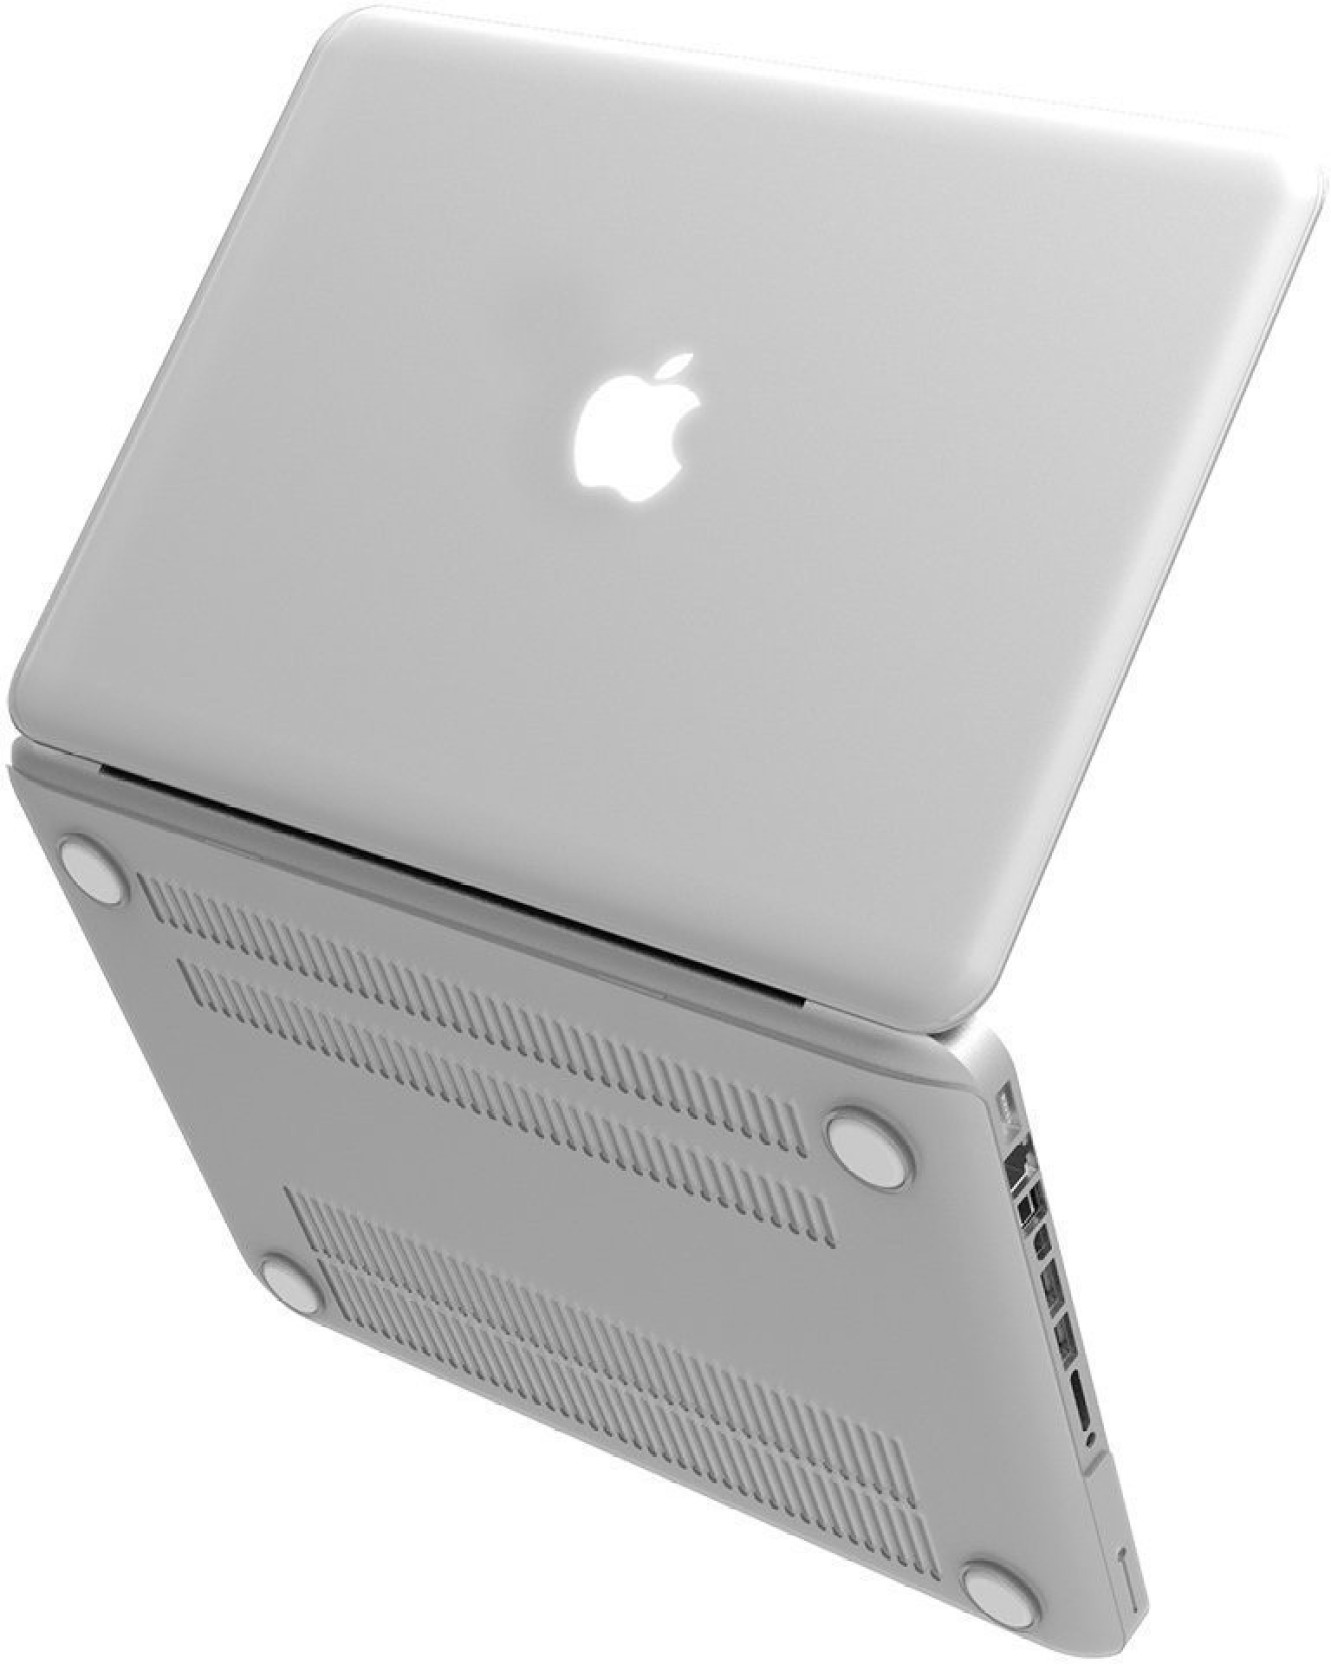 Moca Front Back Case For Logo Cut With 3 Mac Saviours Accessories Apple Macbook Pro Md101 Silver Notebook Share